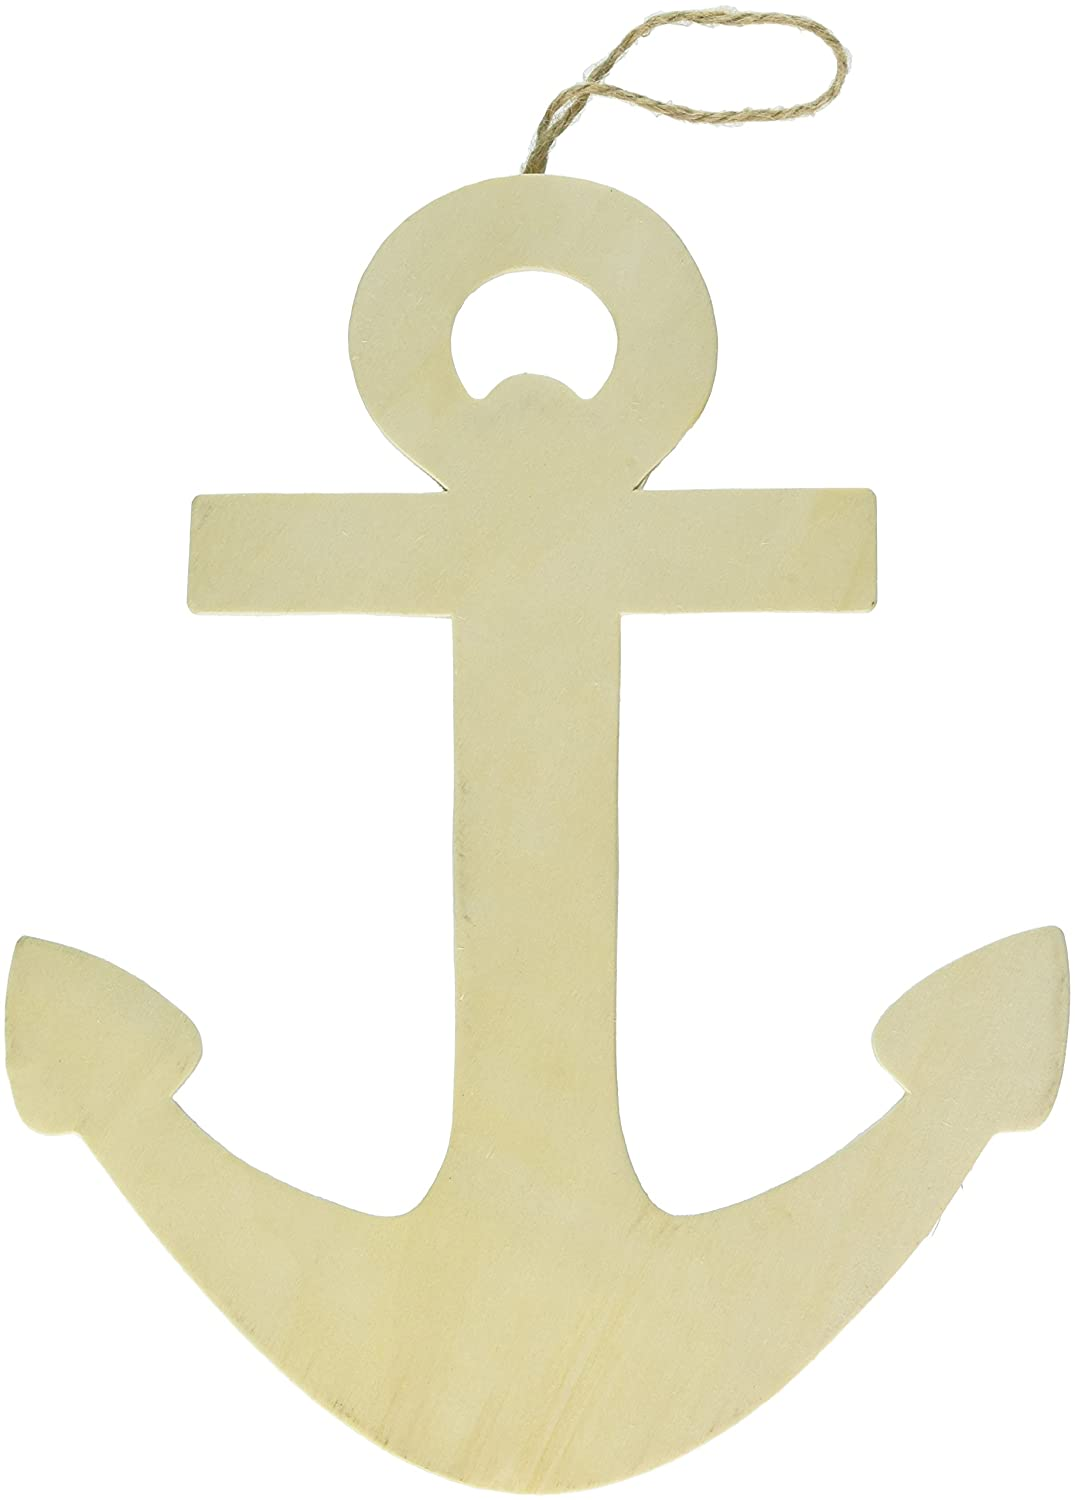 Amazon.com: Darice Unfinished Wooden Anchor Wall Decor with Hanger ...